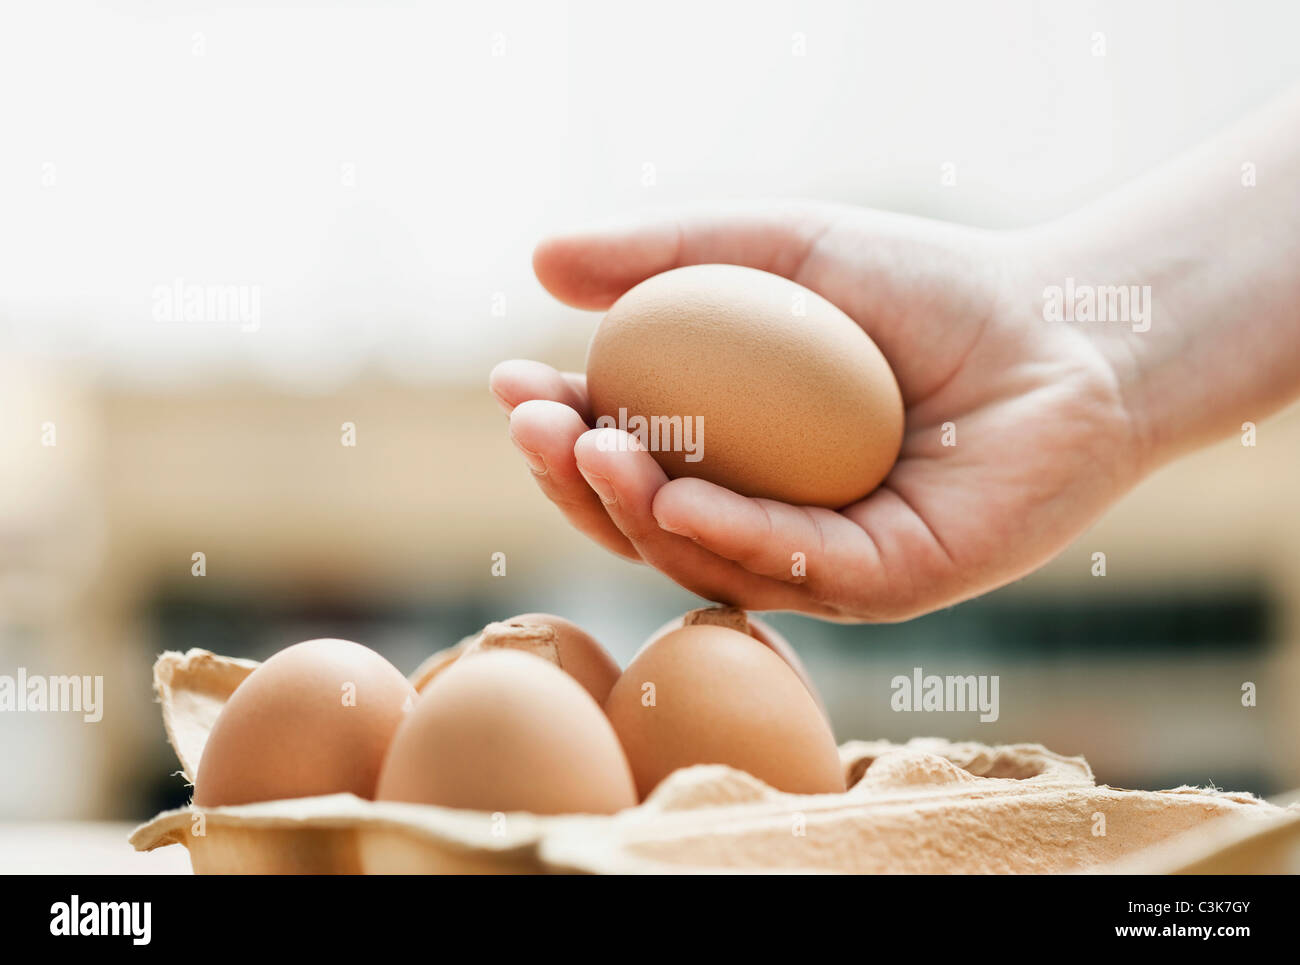 Allemagne, Cologne, Human Hand holding oeufs, Close up Photo Stock